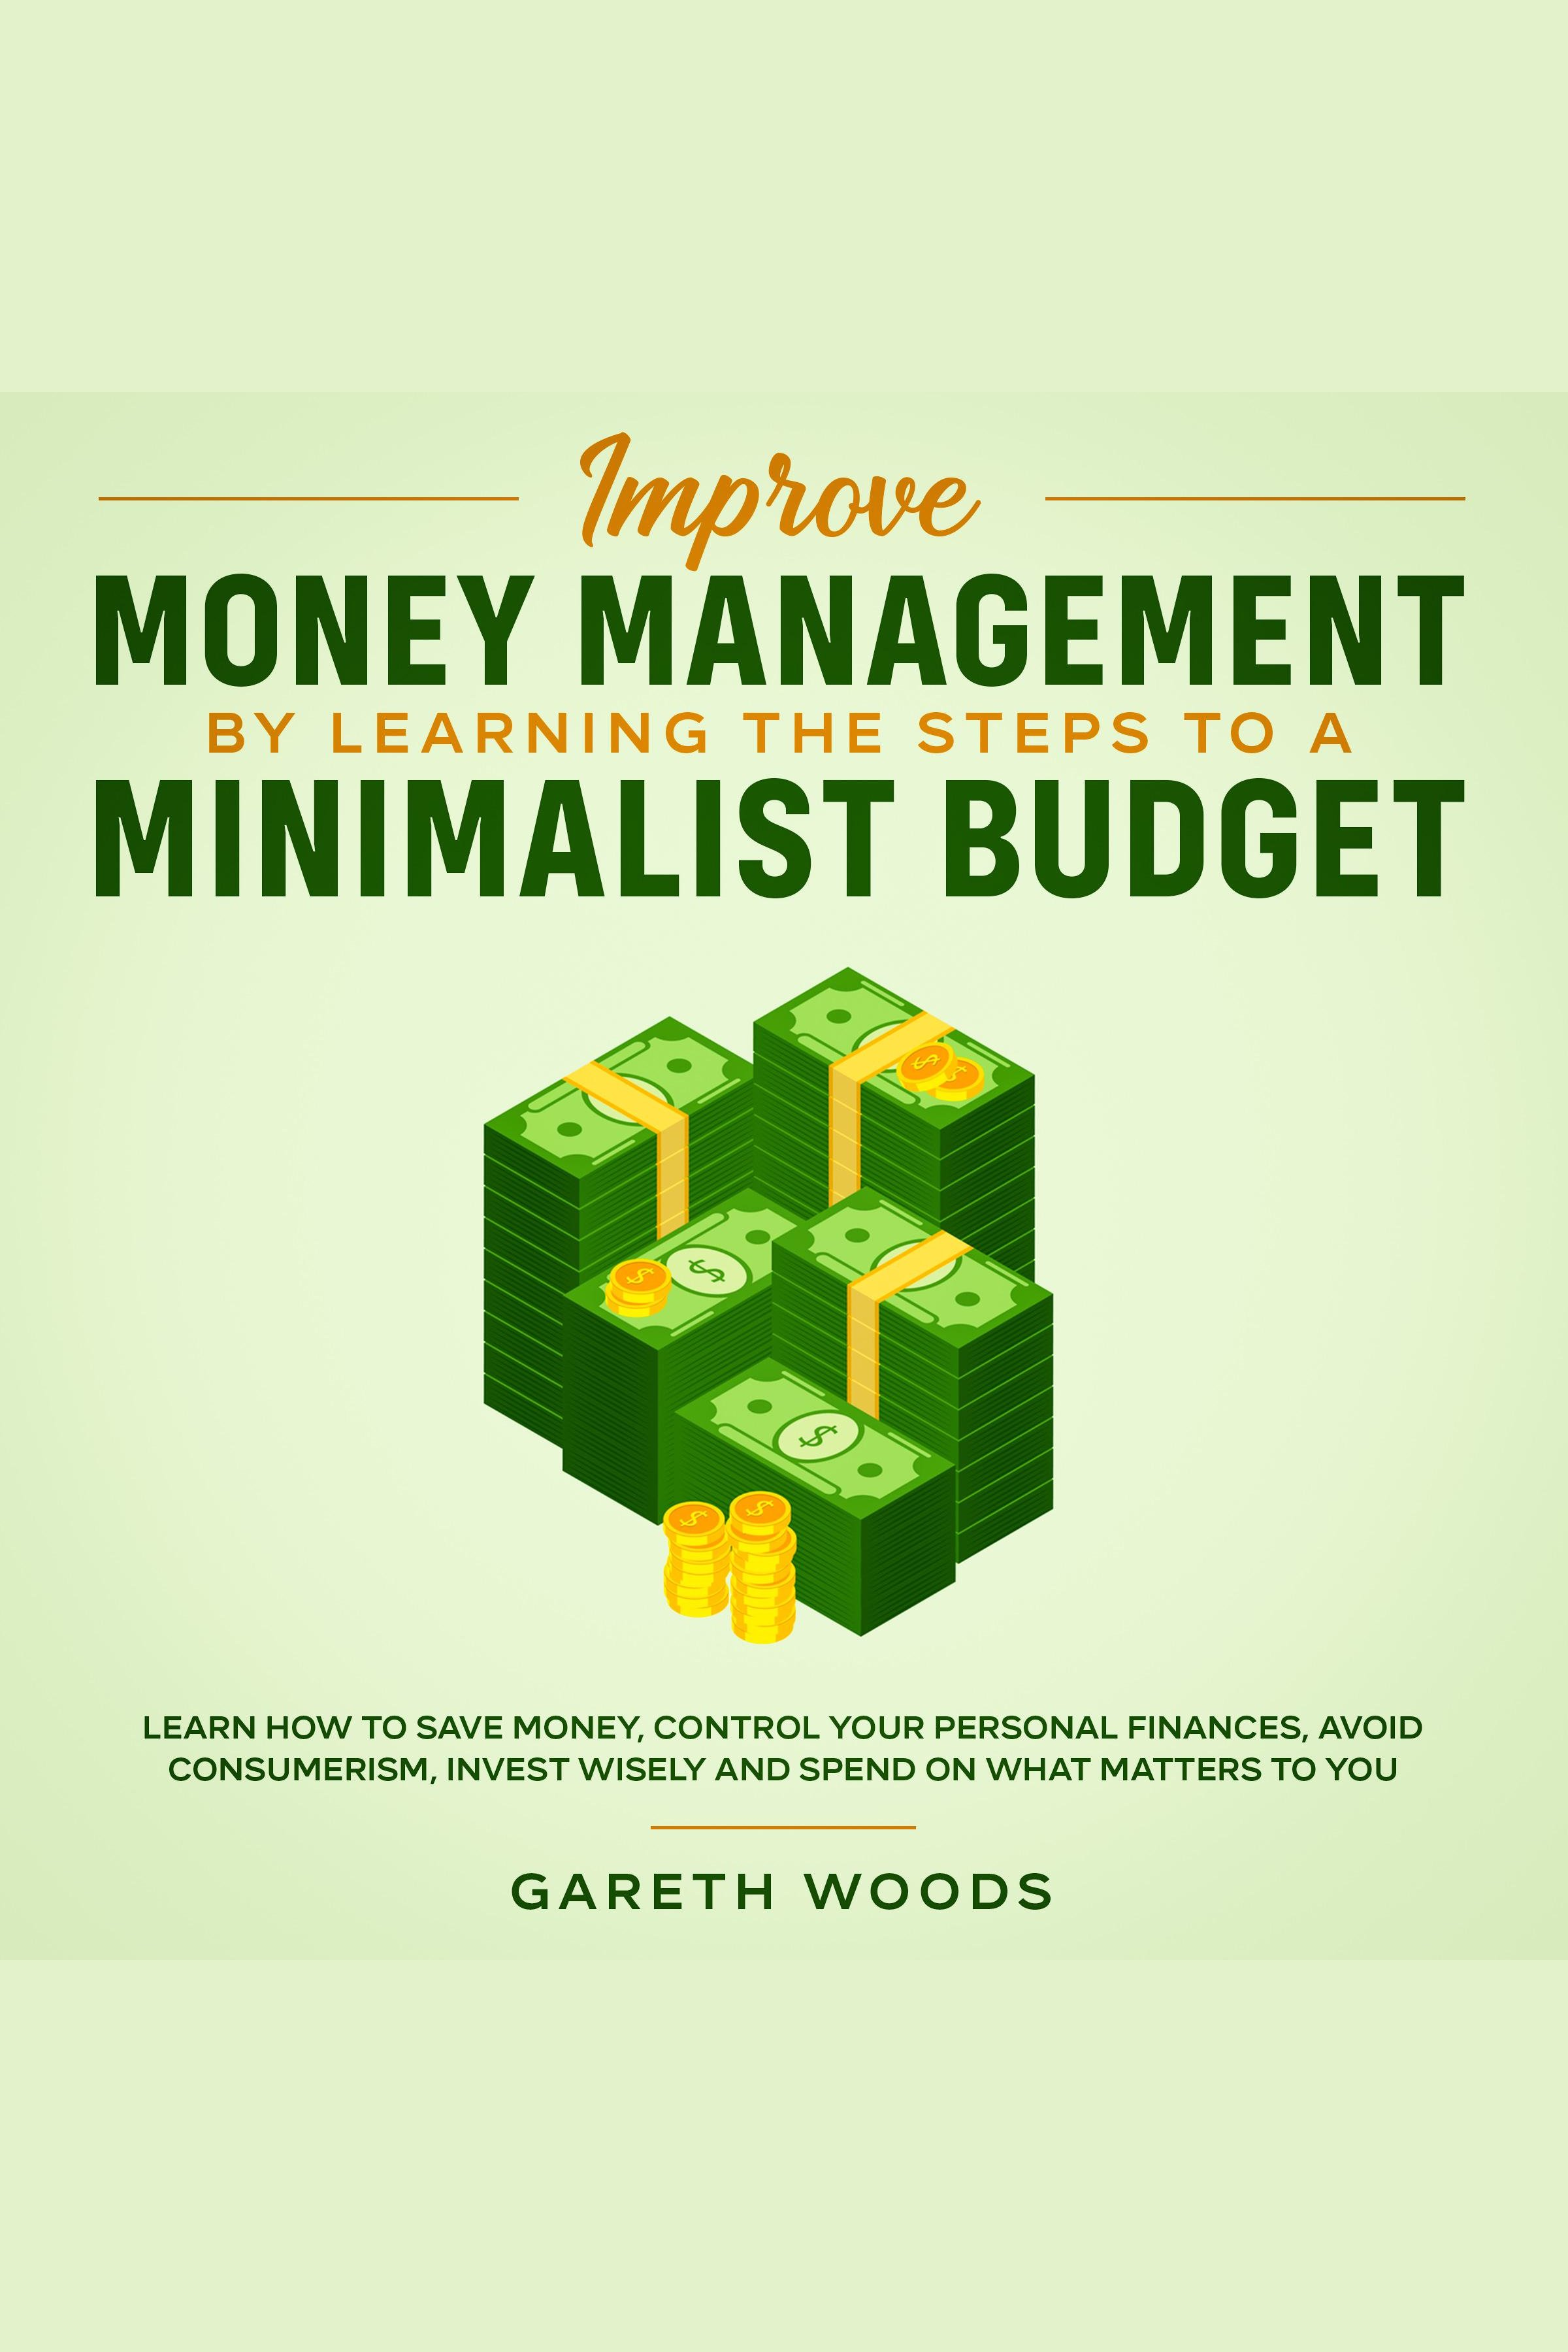 Improve Money Management by Learning the Steps to a Minimalist Budget Learn How to Save Money, Control your Personal Finances, Avoid Consumerism, Invest Wisely and Spend on What Matters to You